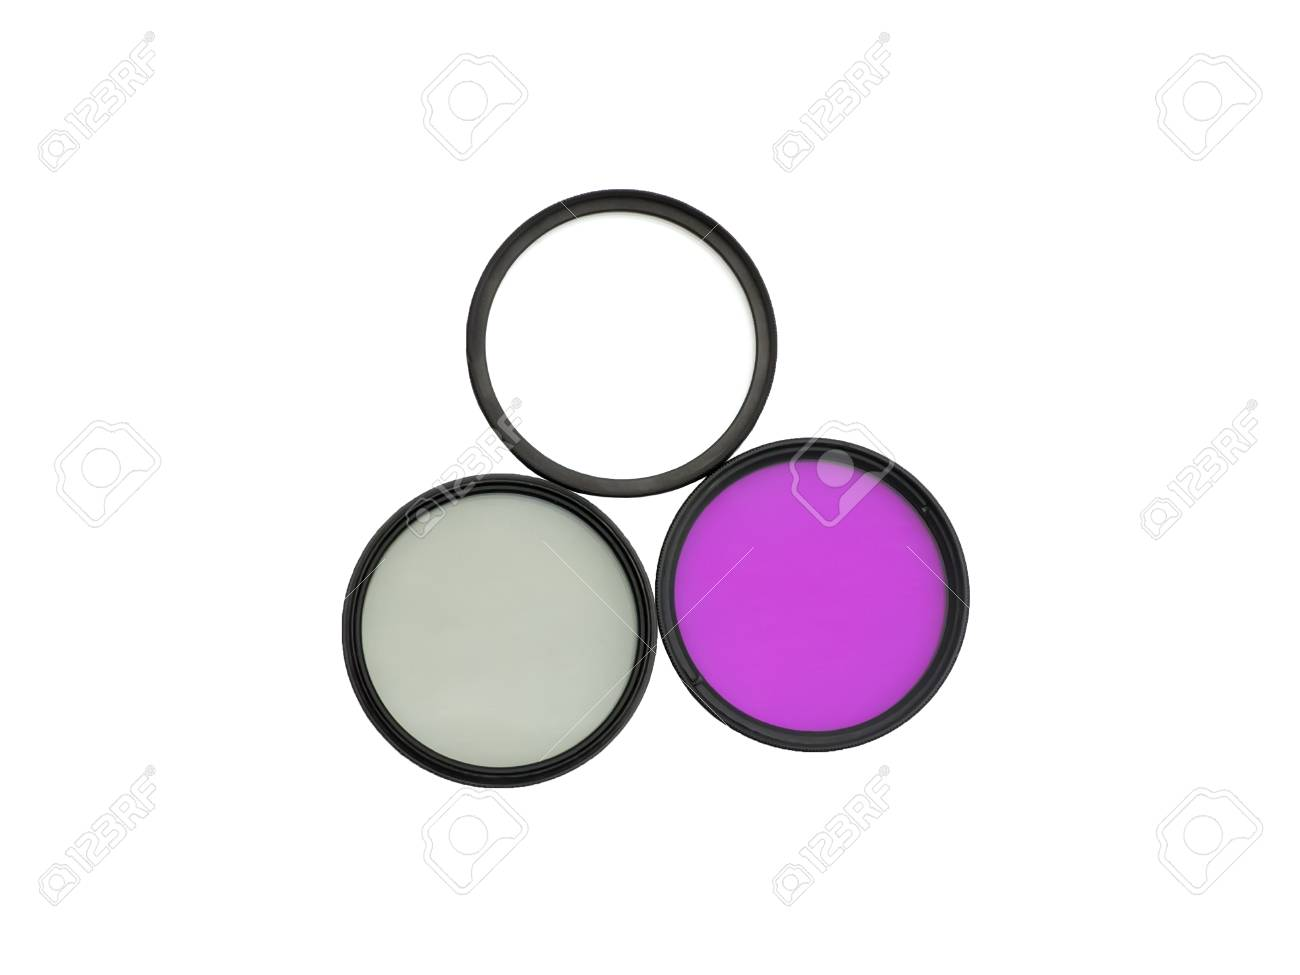 Three photographic filters for digital camera: UV, FLD and CPL - 30567296